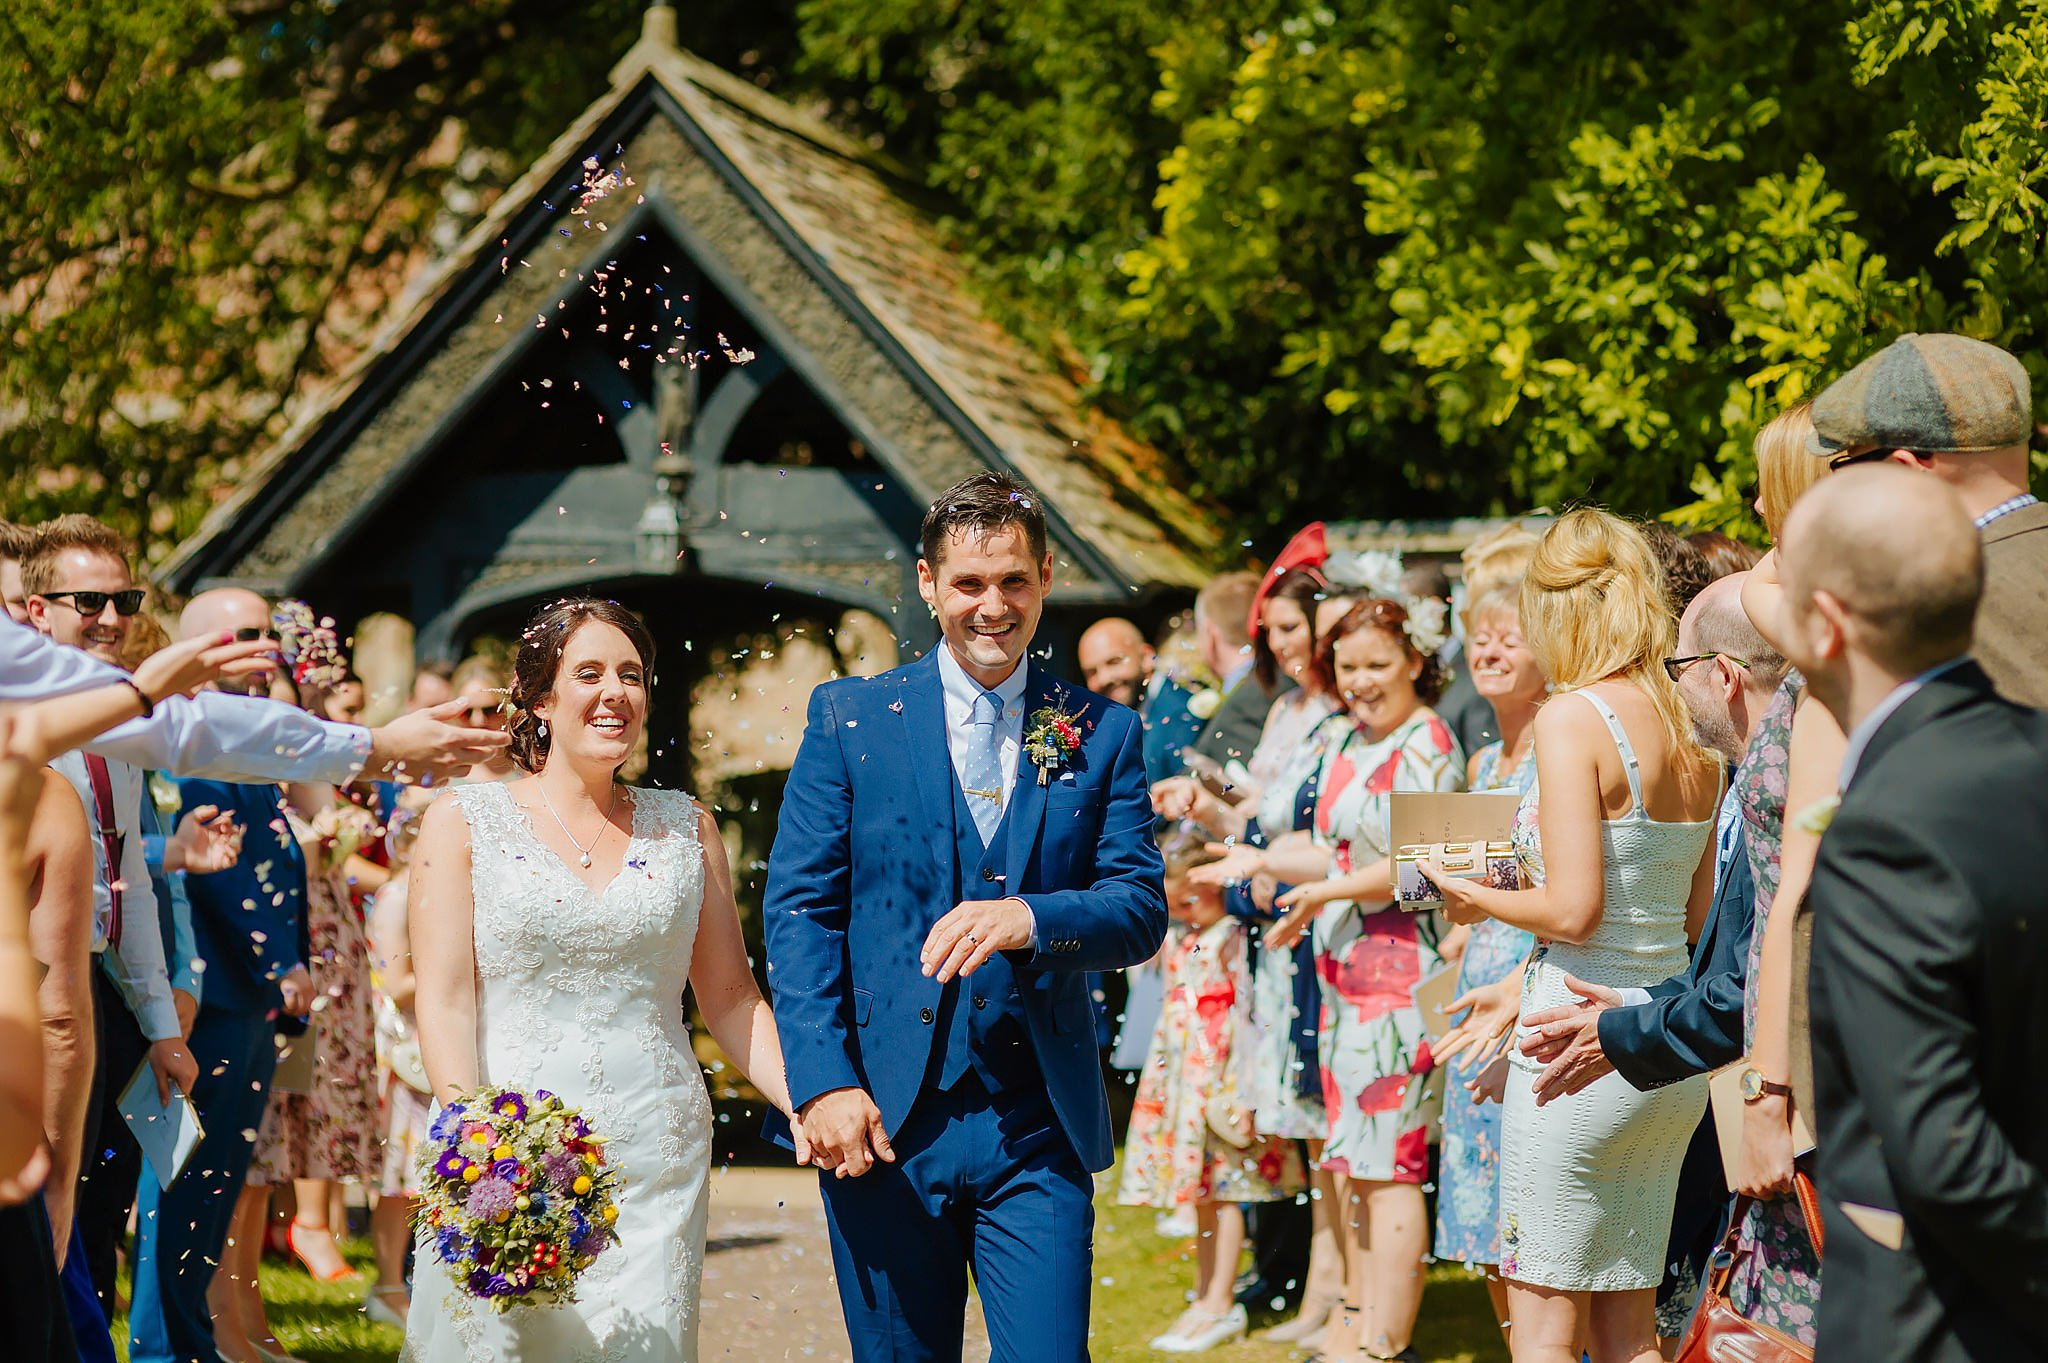 hellens manor wedding 36 - Wedding photography at Hellens Manor in Herefordshire, West Midlands | Shelley + Ian